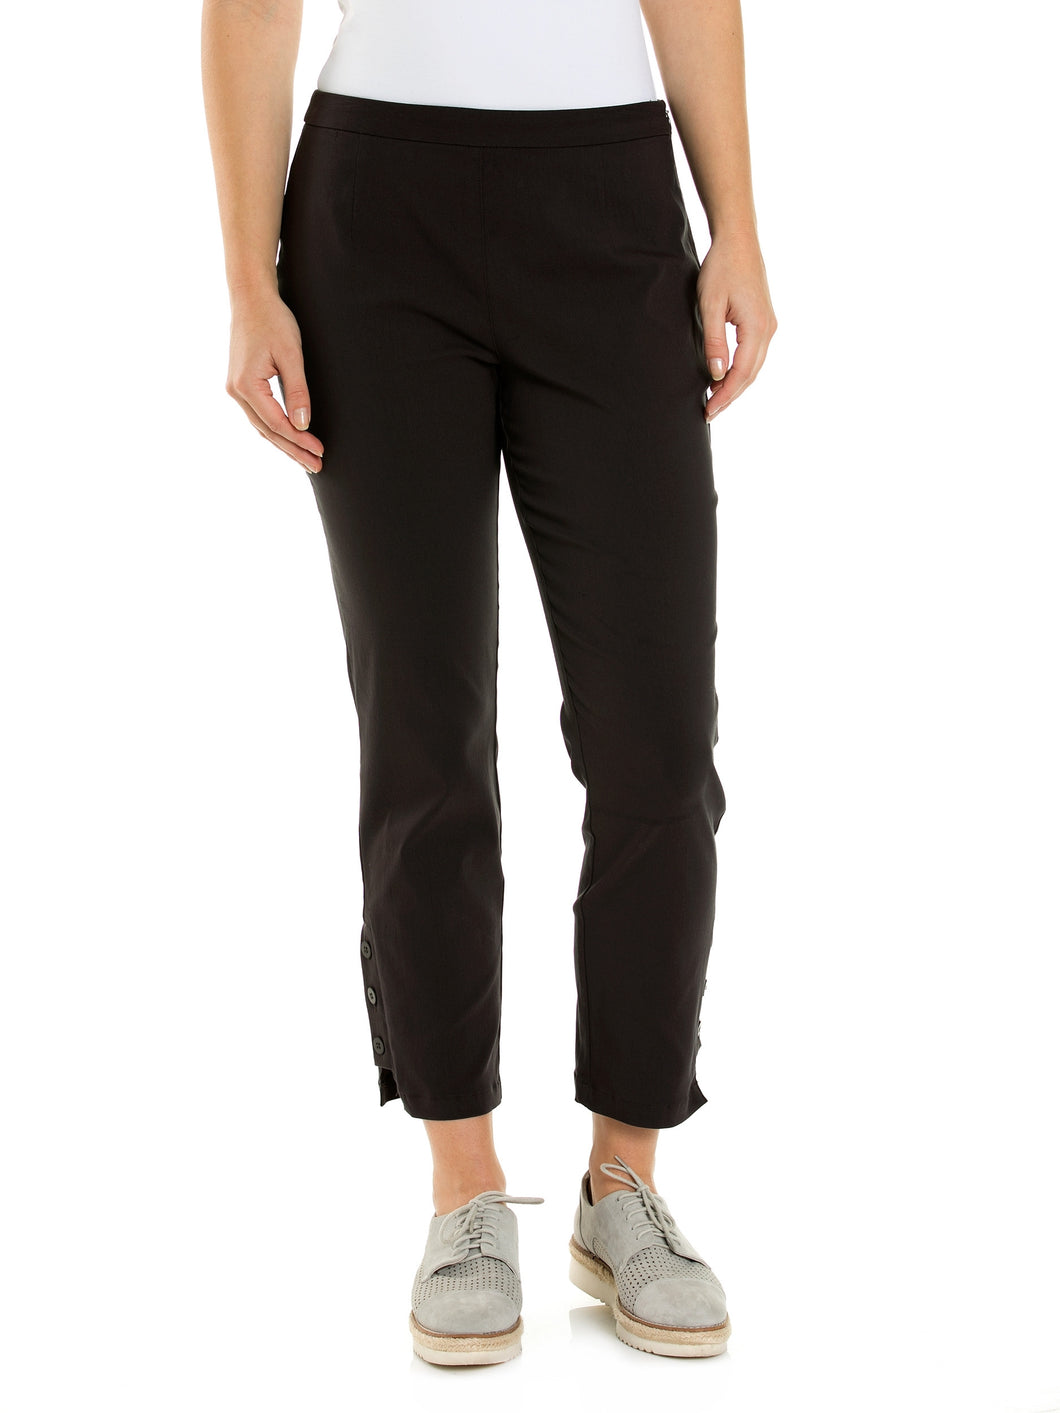 Marco Polo 3/4 Button Pant YTMS98020 Nickel